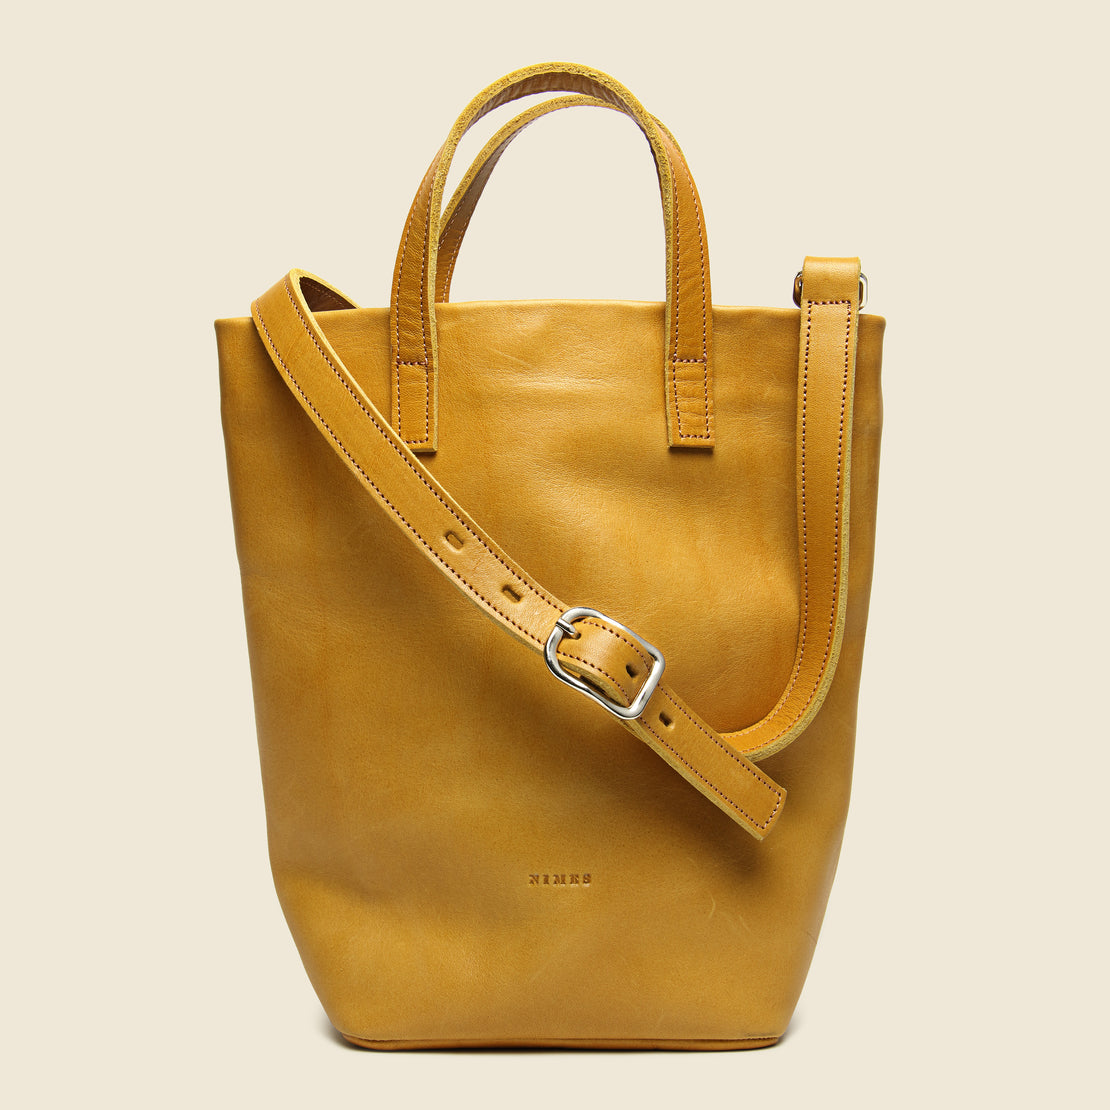 Nimes Small Barracas Leather Tote Bag - Caramel